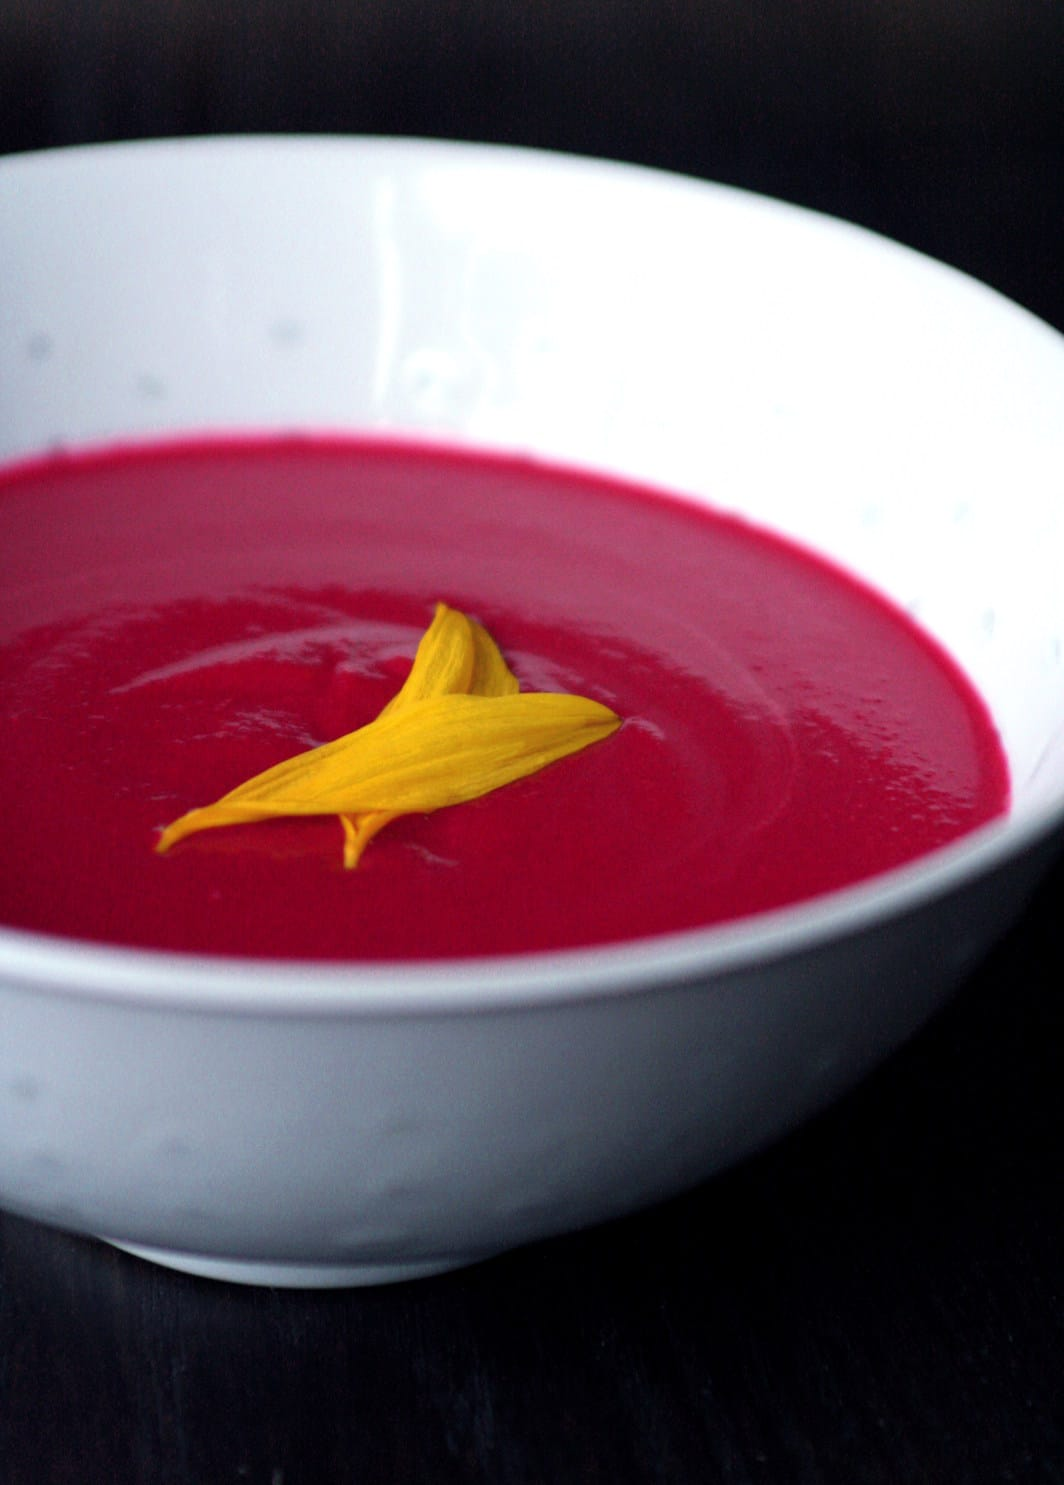 Beet & Cauliflower Soup